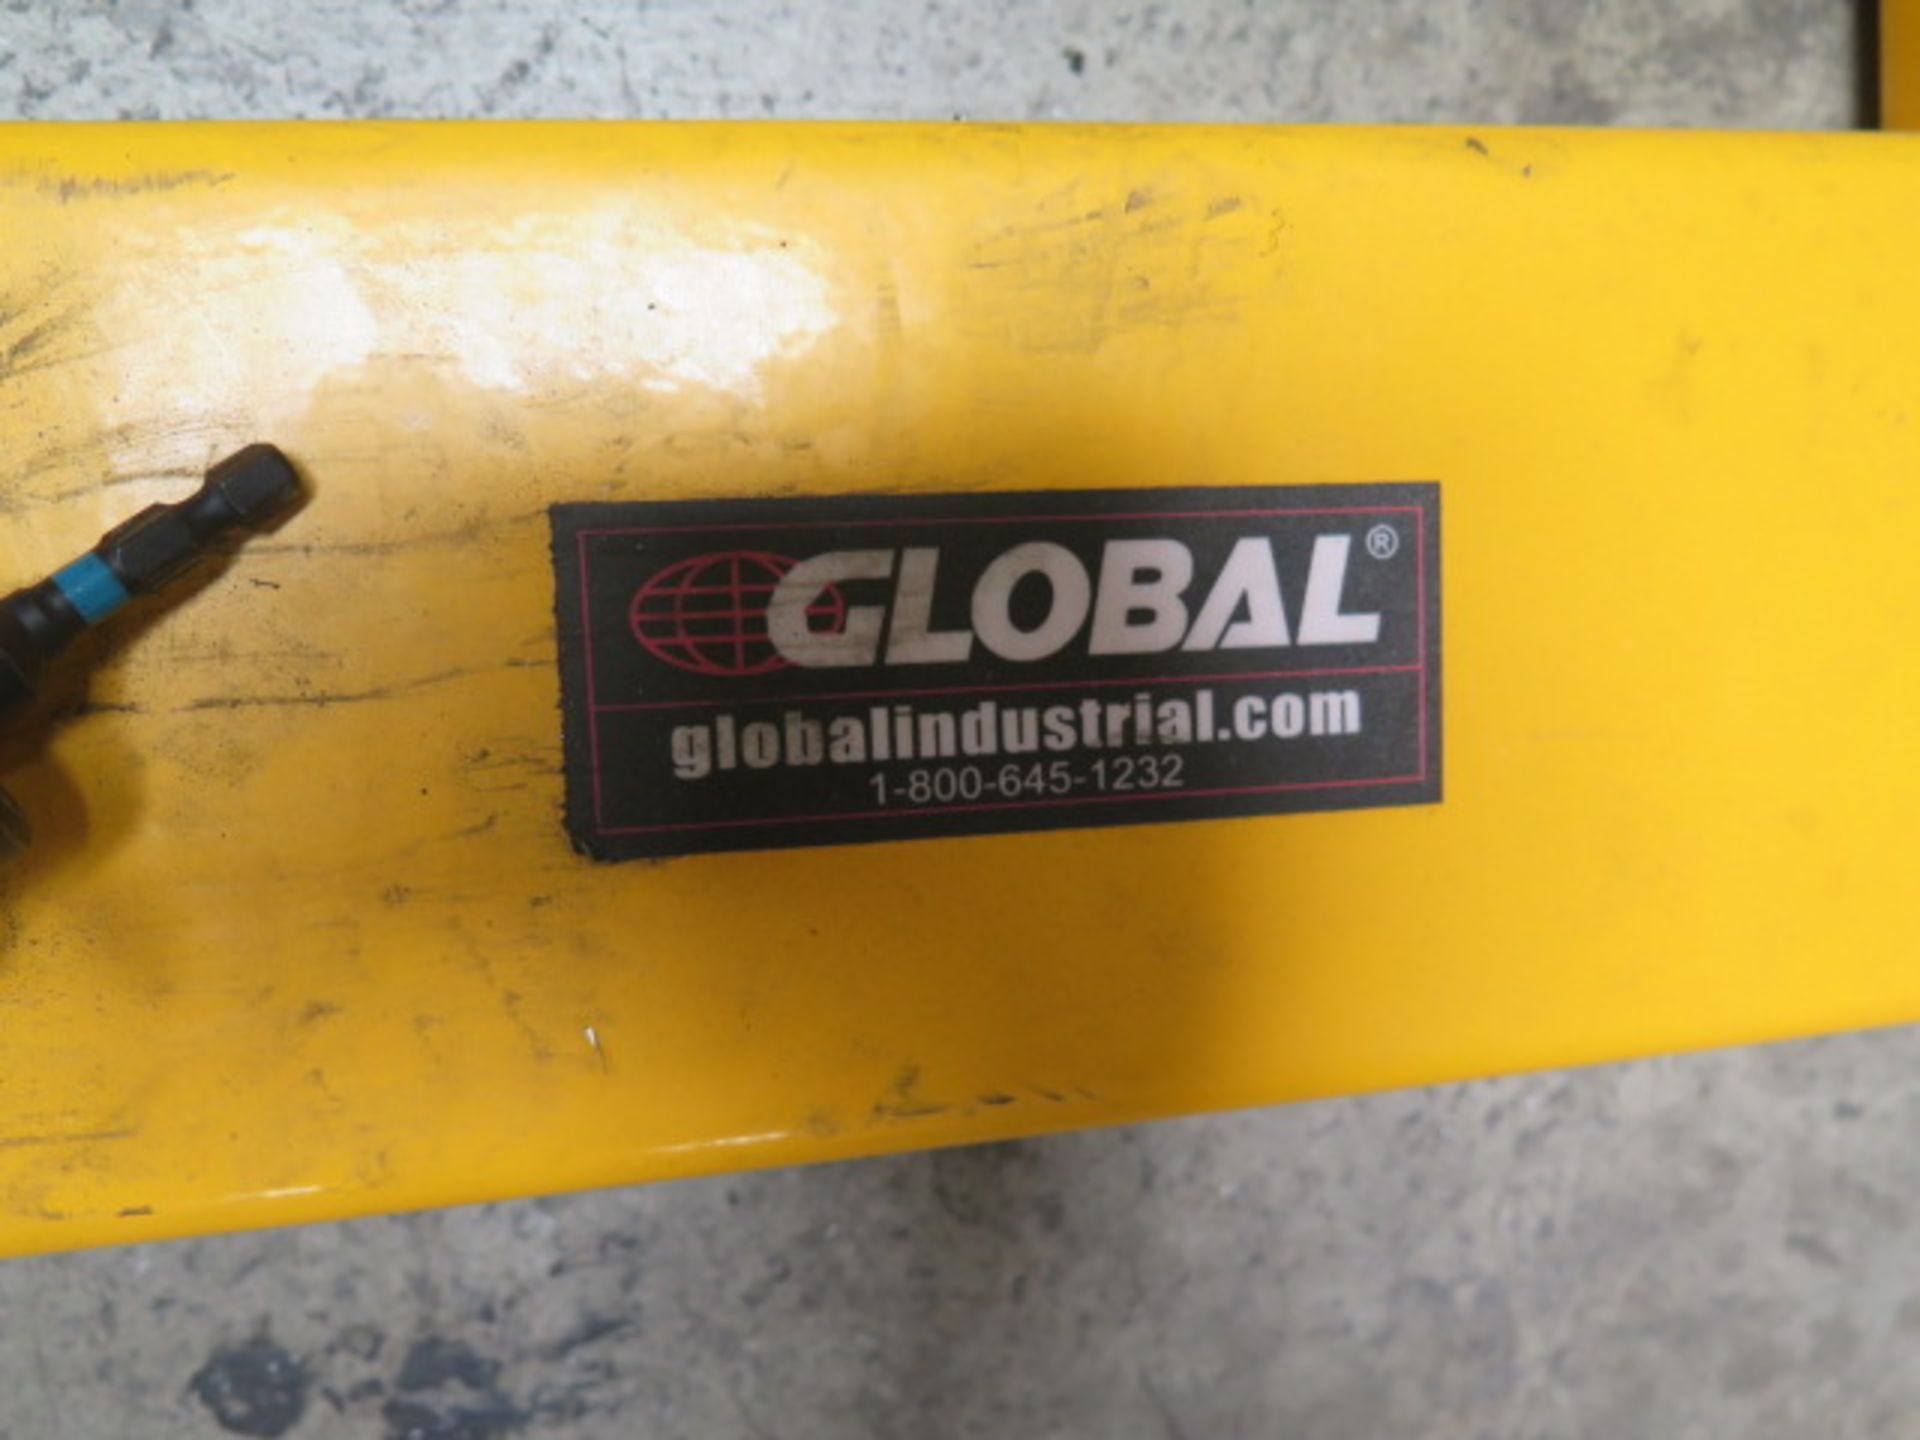 Global Barrel Turner Forklift Attachment (SOLD AS-IS - NO WARRANTY) - Image 4 of 5